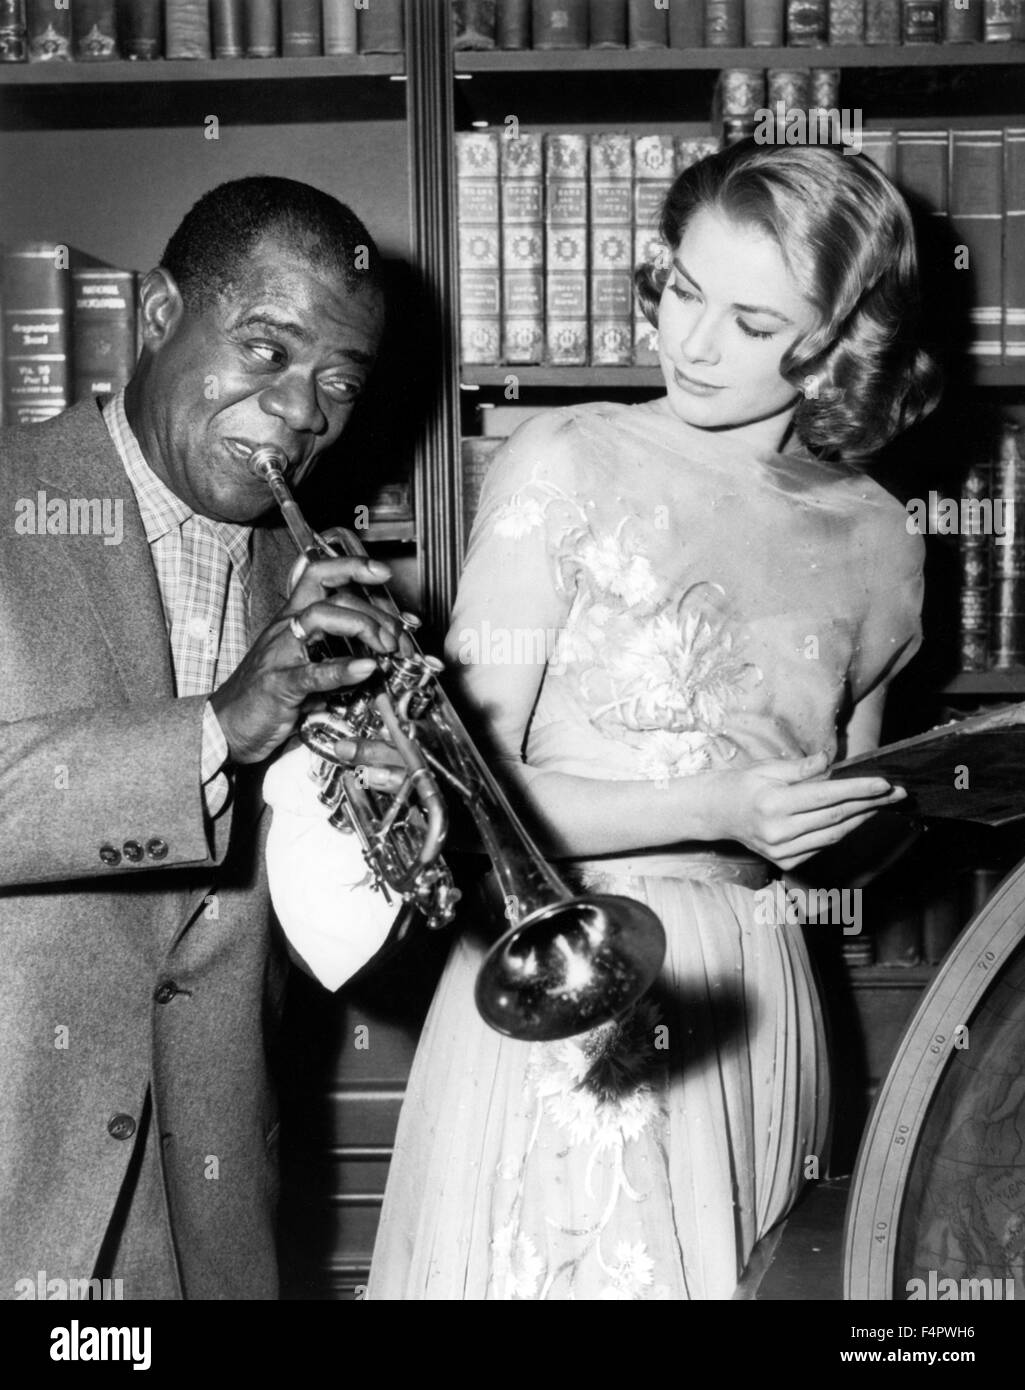 Louis Armstrong and Grace Kelly / High Society / 1956 directed by Charles Walters [Metro-Goldwin-Mayer Pictures] - Stock Image